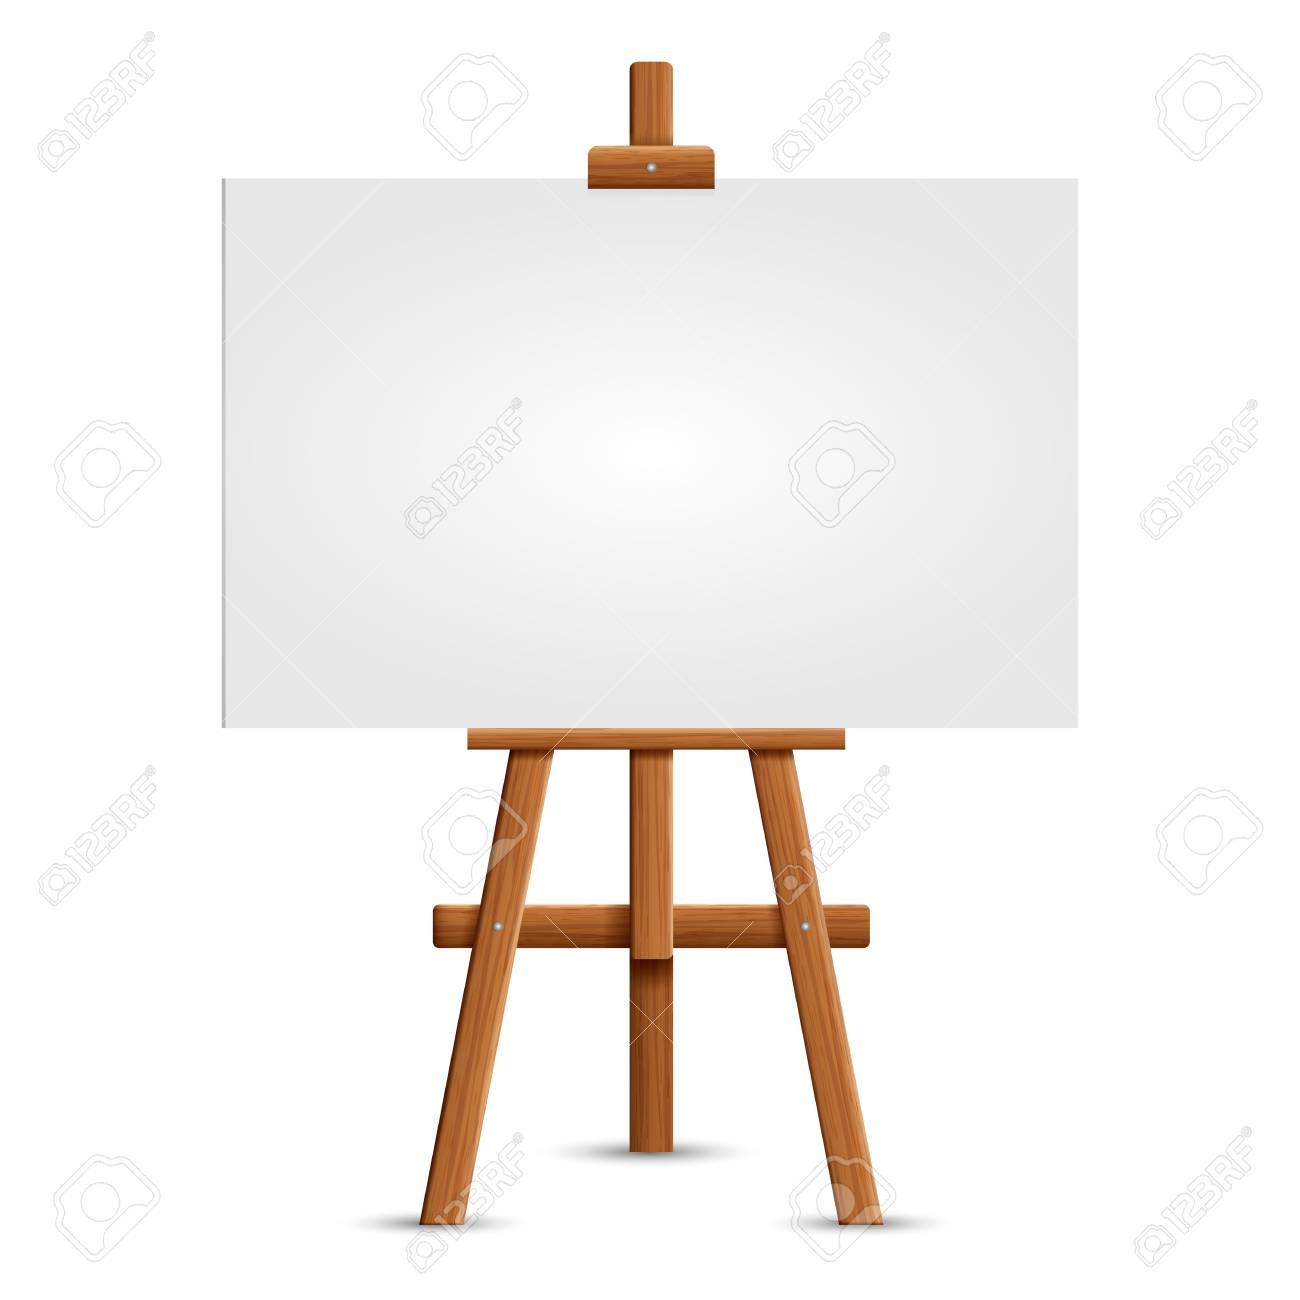 Blank art board and realistic wooden easel. Wooden Brown Easel with Mock Up Empty Blank Square Canvas Isolated on white background. Vector illustration - 96183171